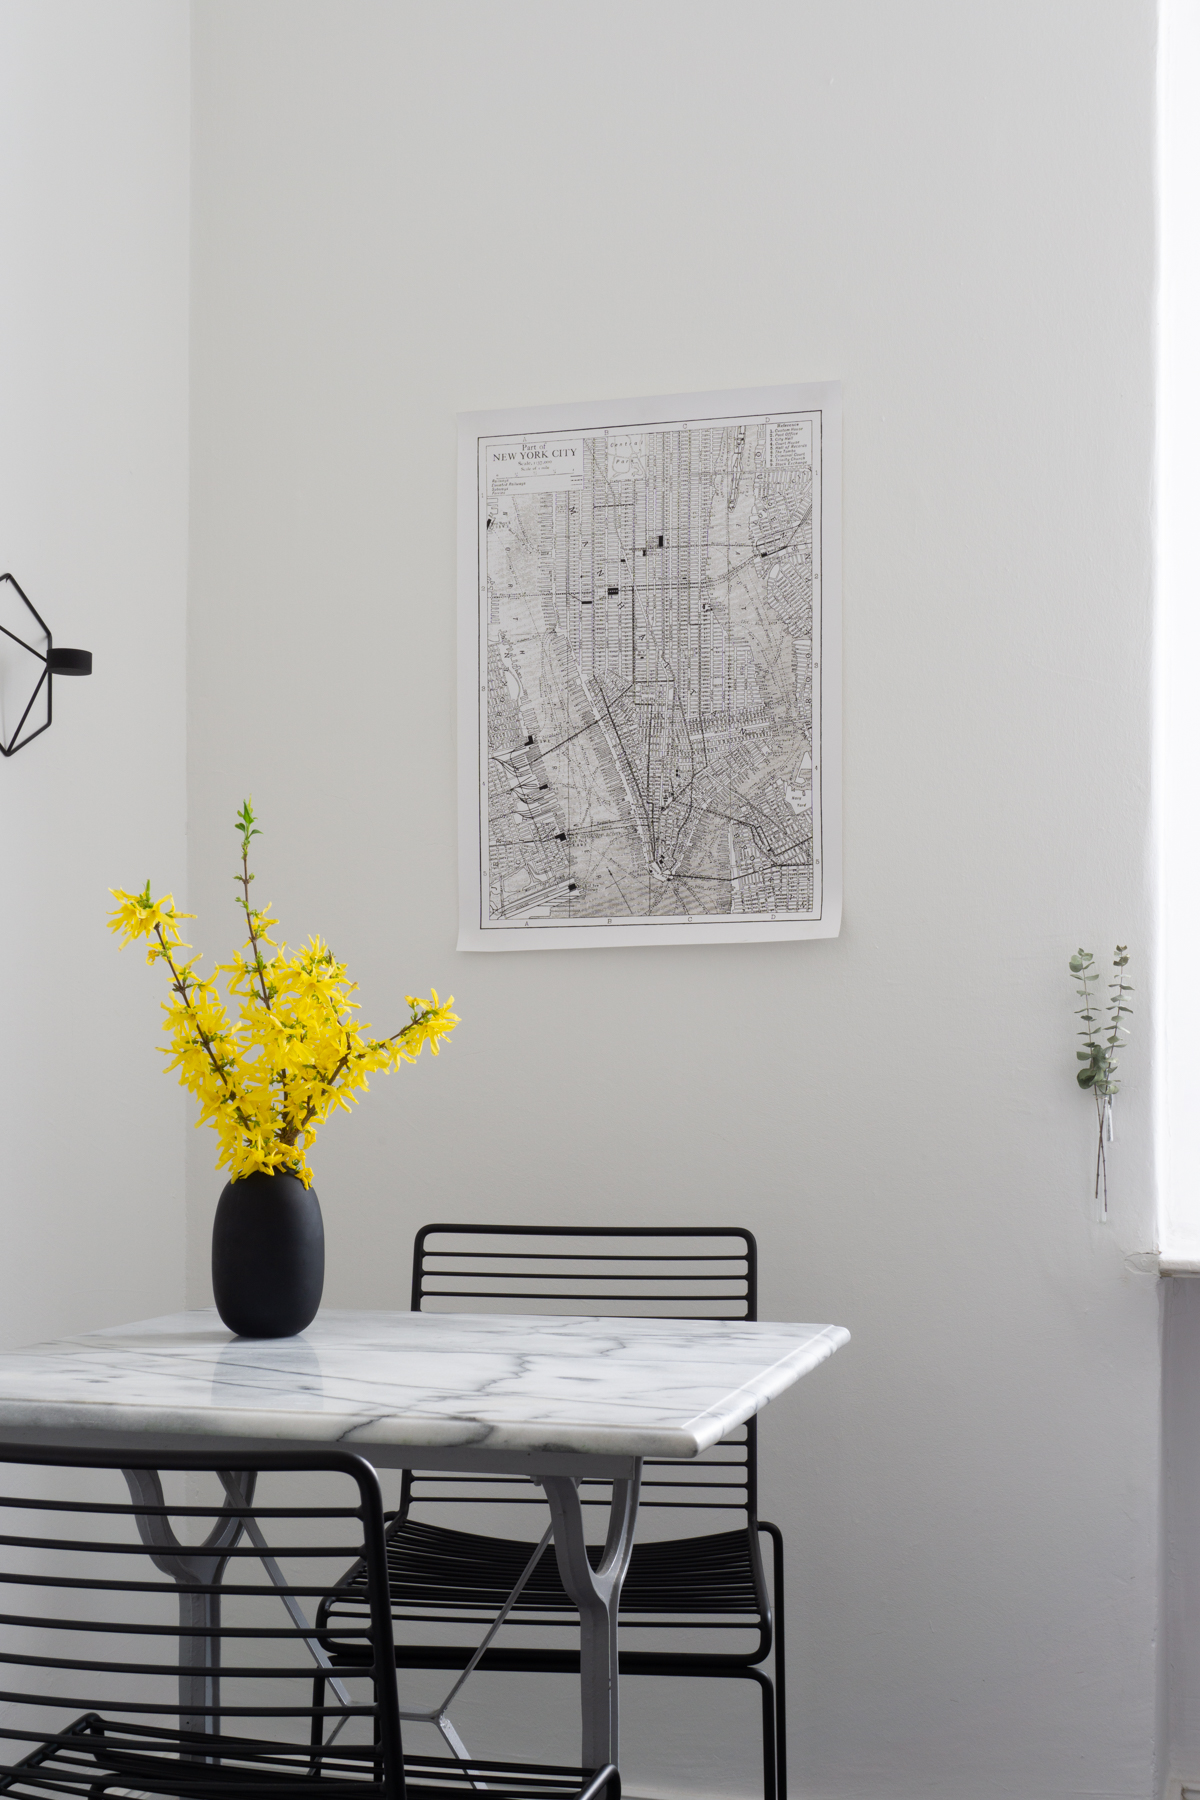 Minimalist Scandinavian Kitchen - Marble Table, HAY HEE Chair, Menu POV, Yellow Flowers, Forsythia - RG Daily Blog Interior Style